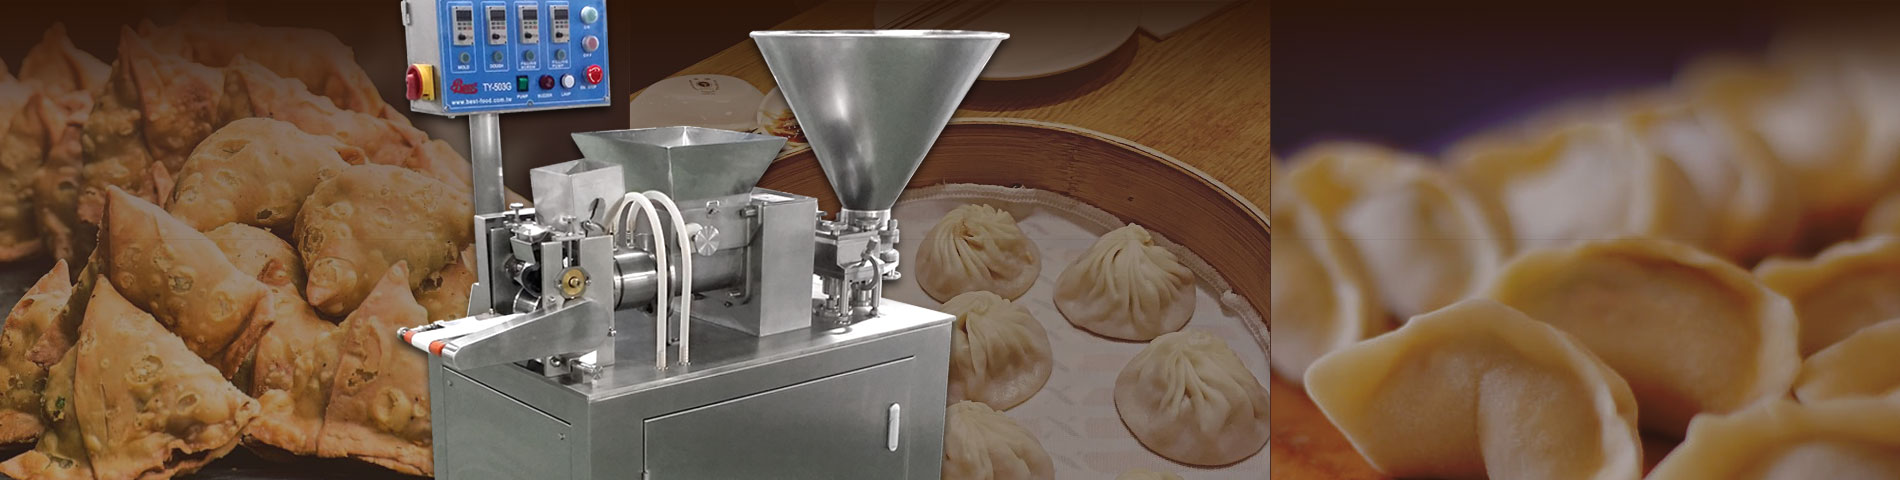 Dumpling, Samosa, Mini Juicy Bun TY503G dumpling machine